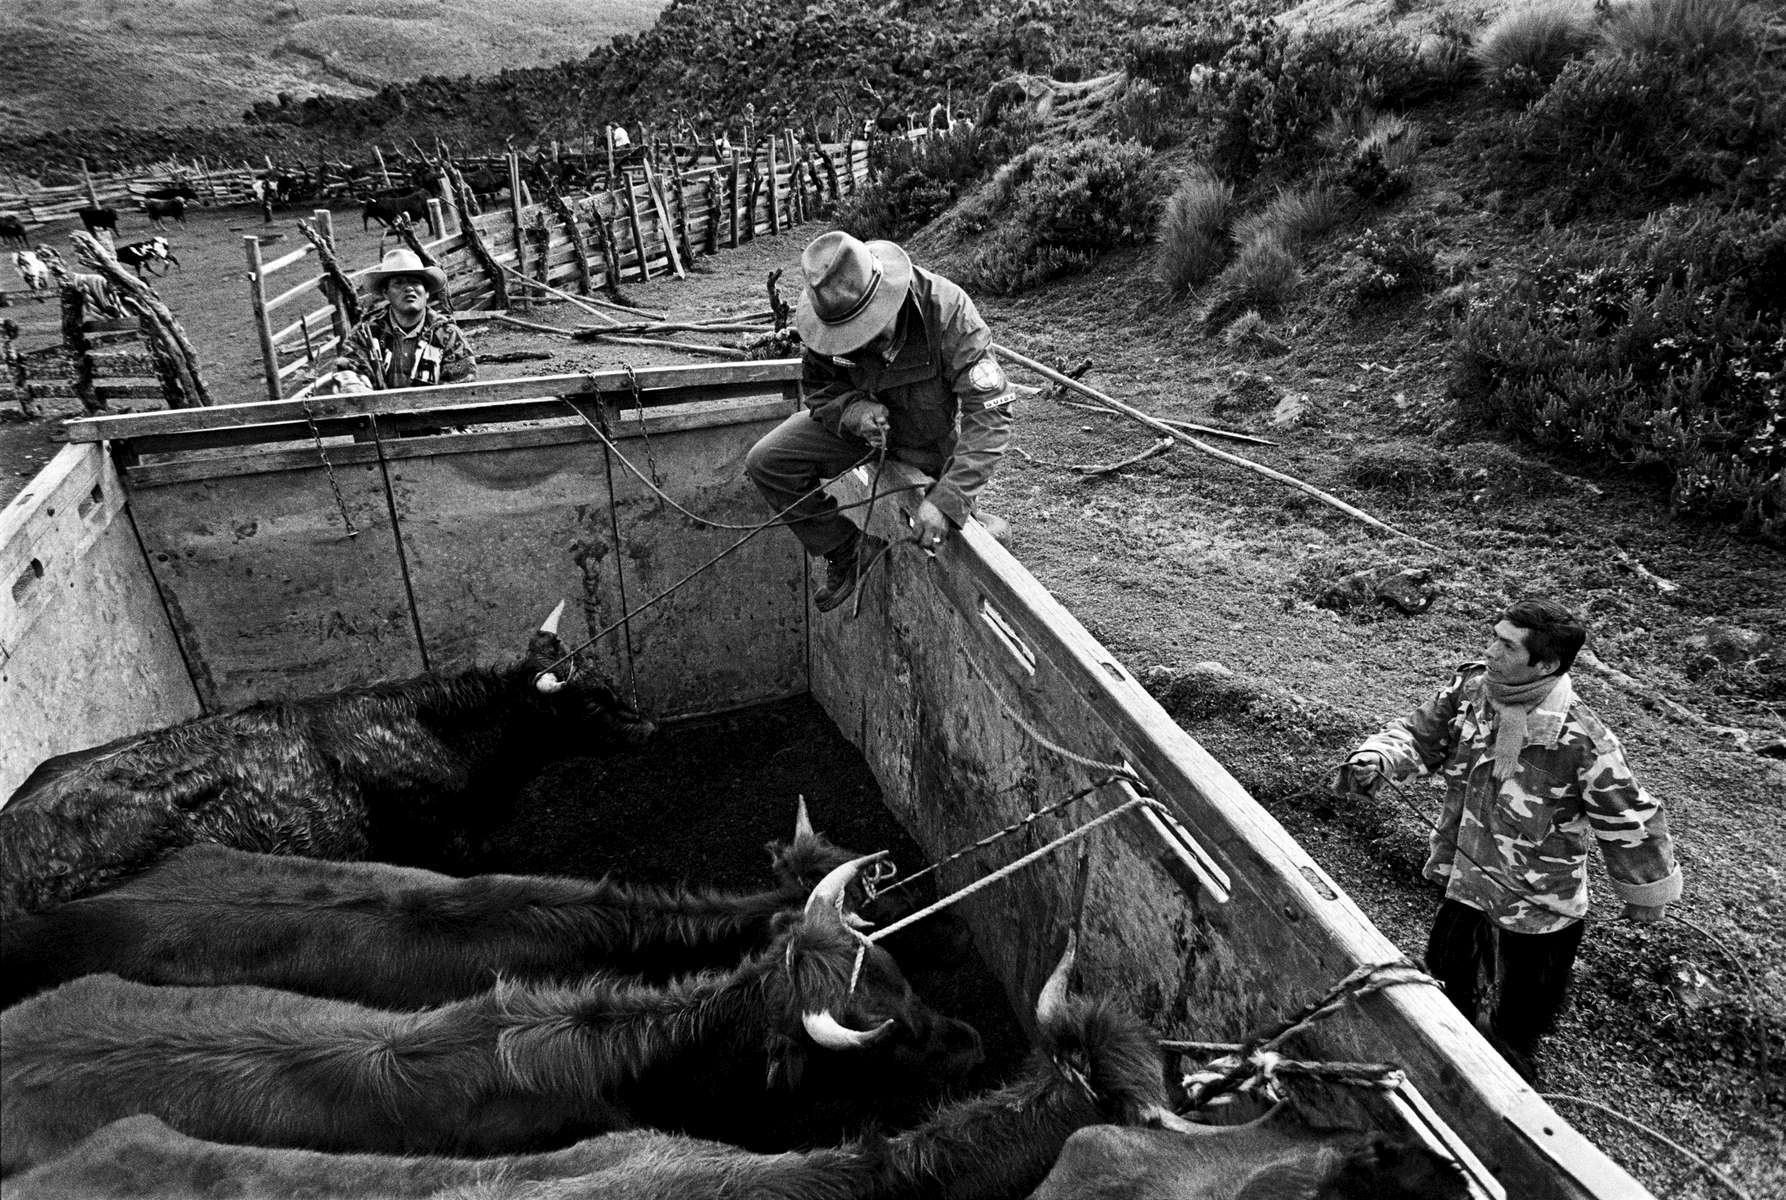 Ecuadorian Chagras mustering up bulls for the rodeo season in Puerte de la Muerte 2000